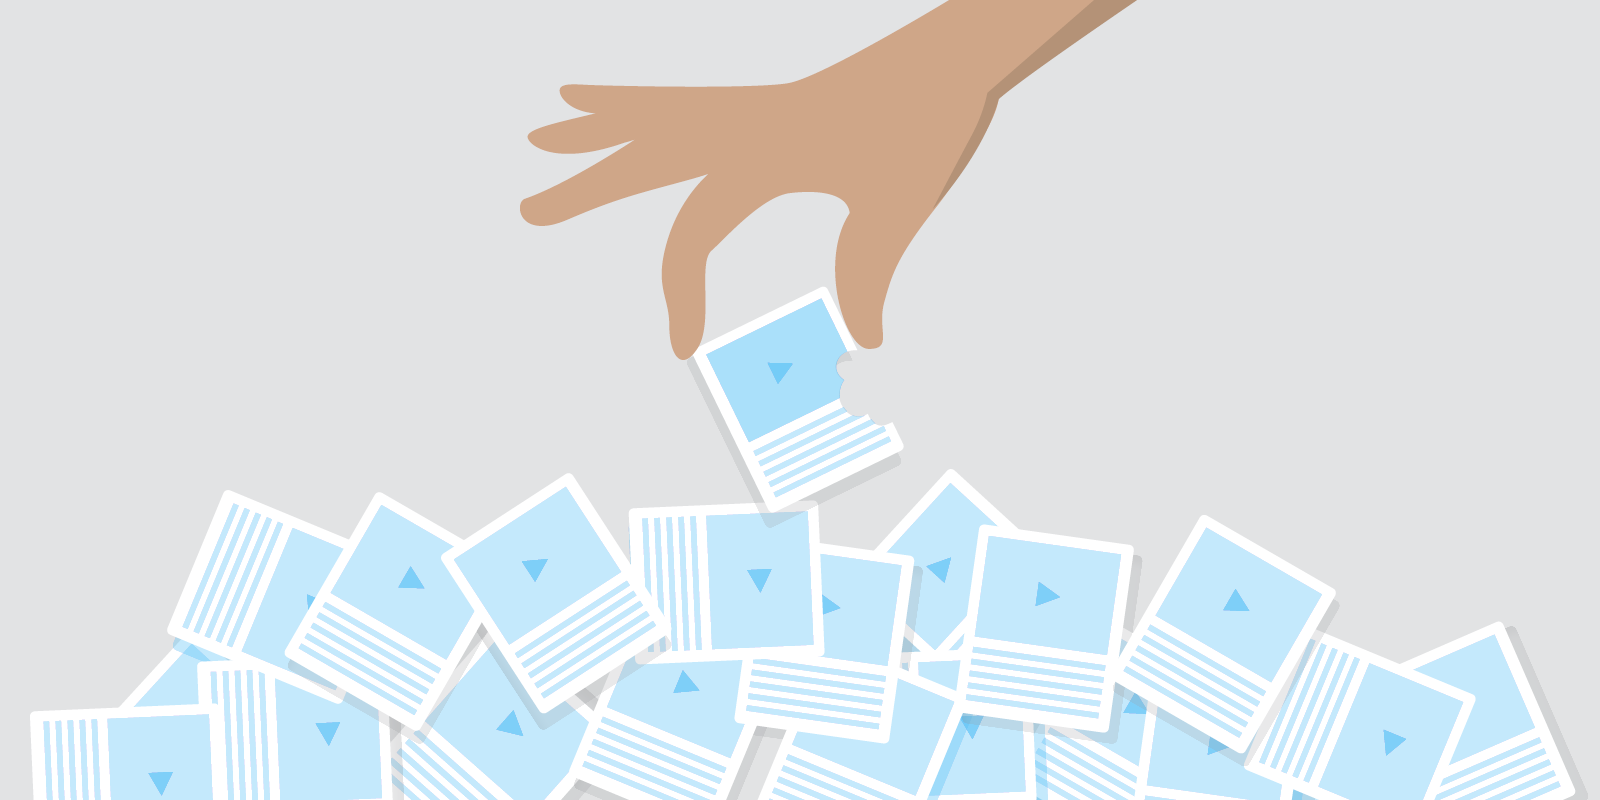 Hand reaches into a pile of content cards with videos and descriptions. Lifts a card with a bite in it.